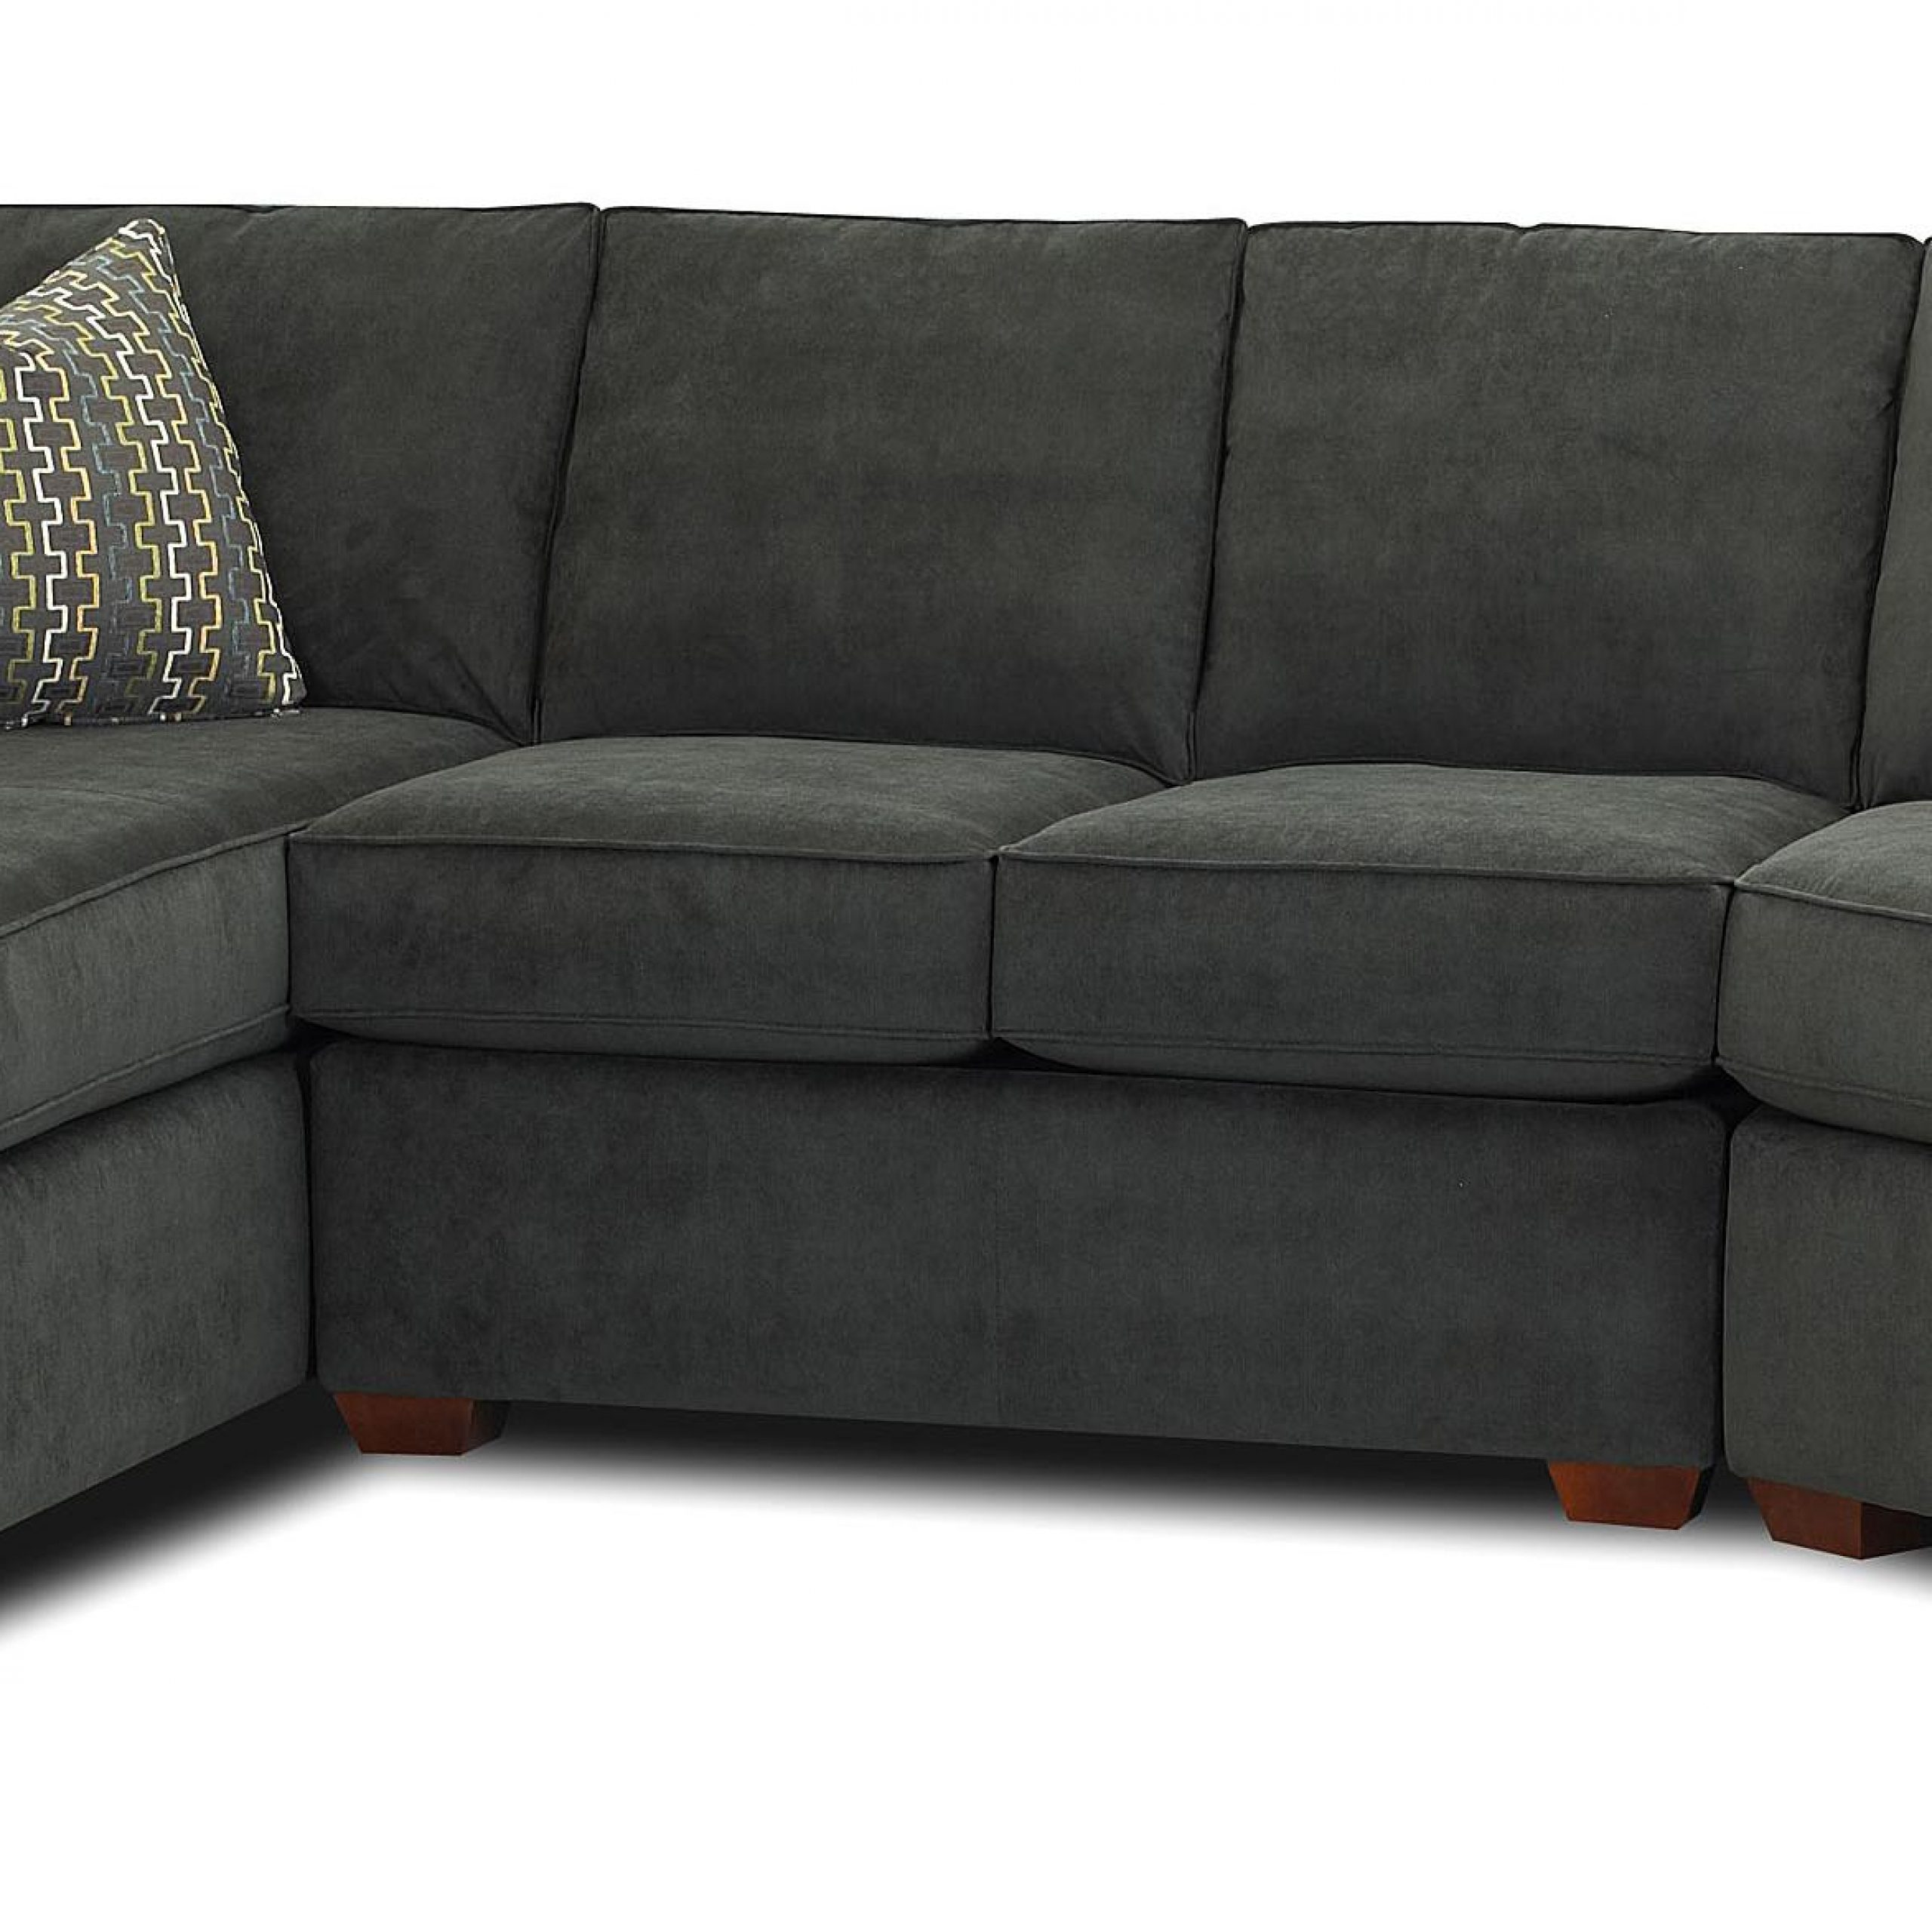 Kiefer Right Facing Sectional Sofas Intended For Most Recent Sectional Sofa With Right Facing Sofa Chaiseklaussner (View 10 of 20)